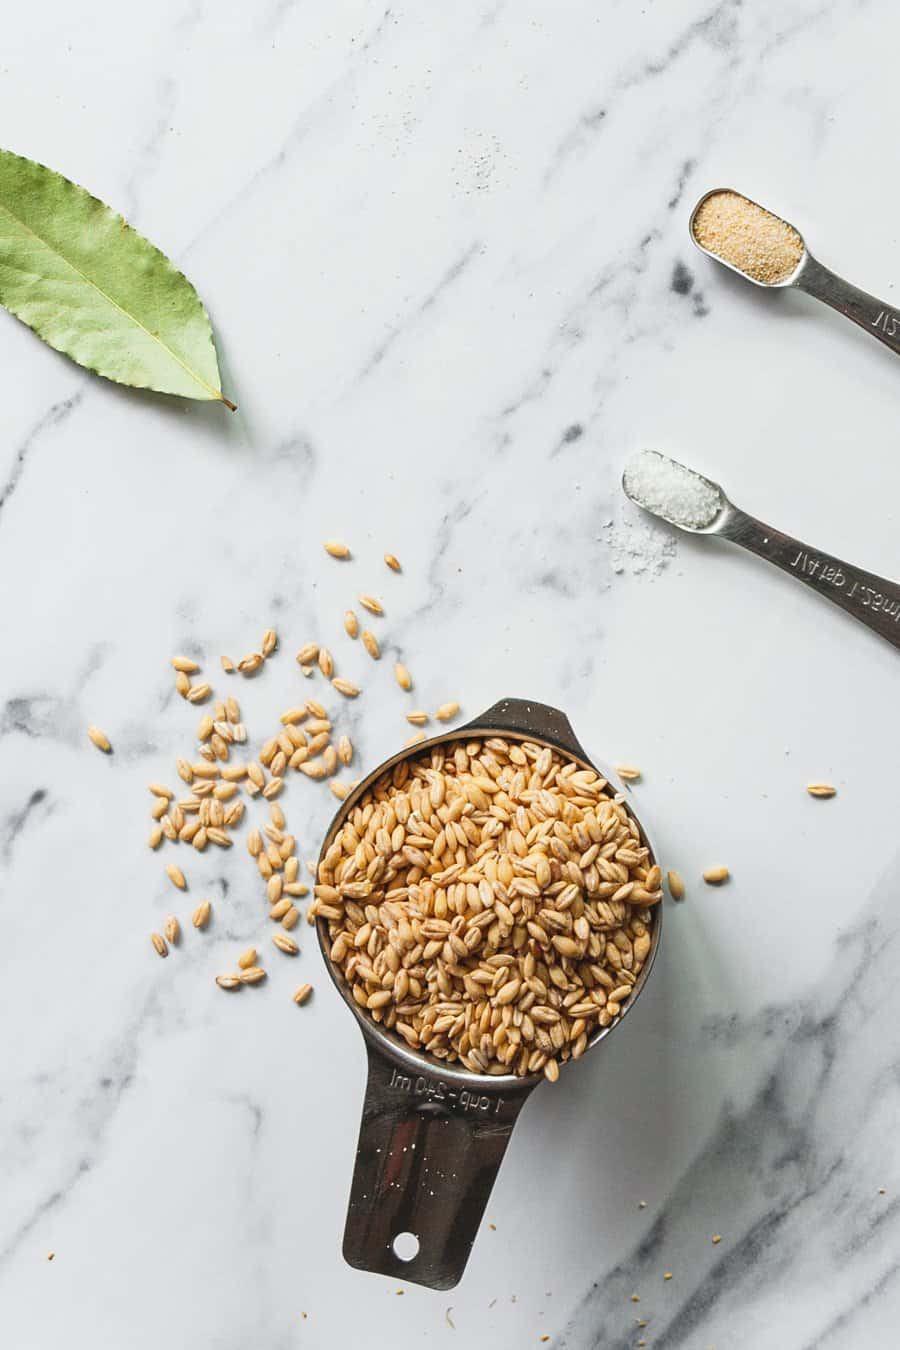 Ingredients needed to make Instant Pot Barley laid out on a counter